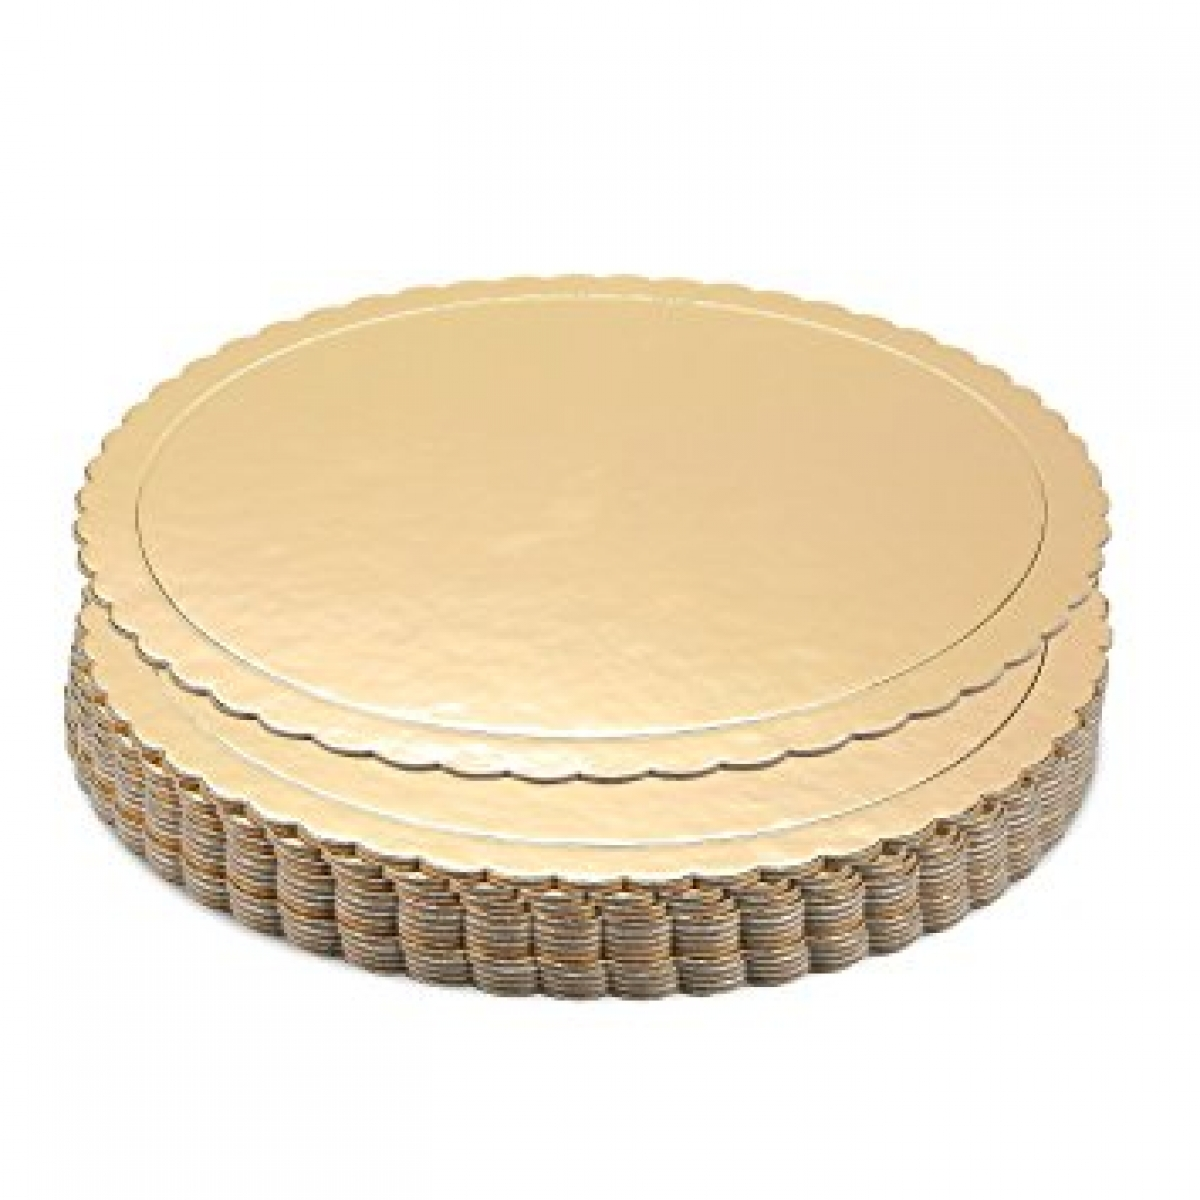 round carton tray (golden) 26